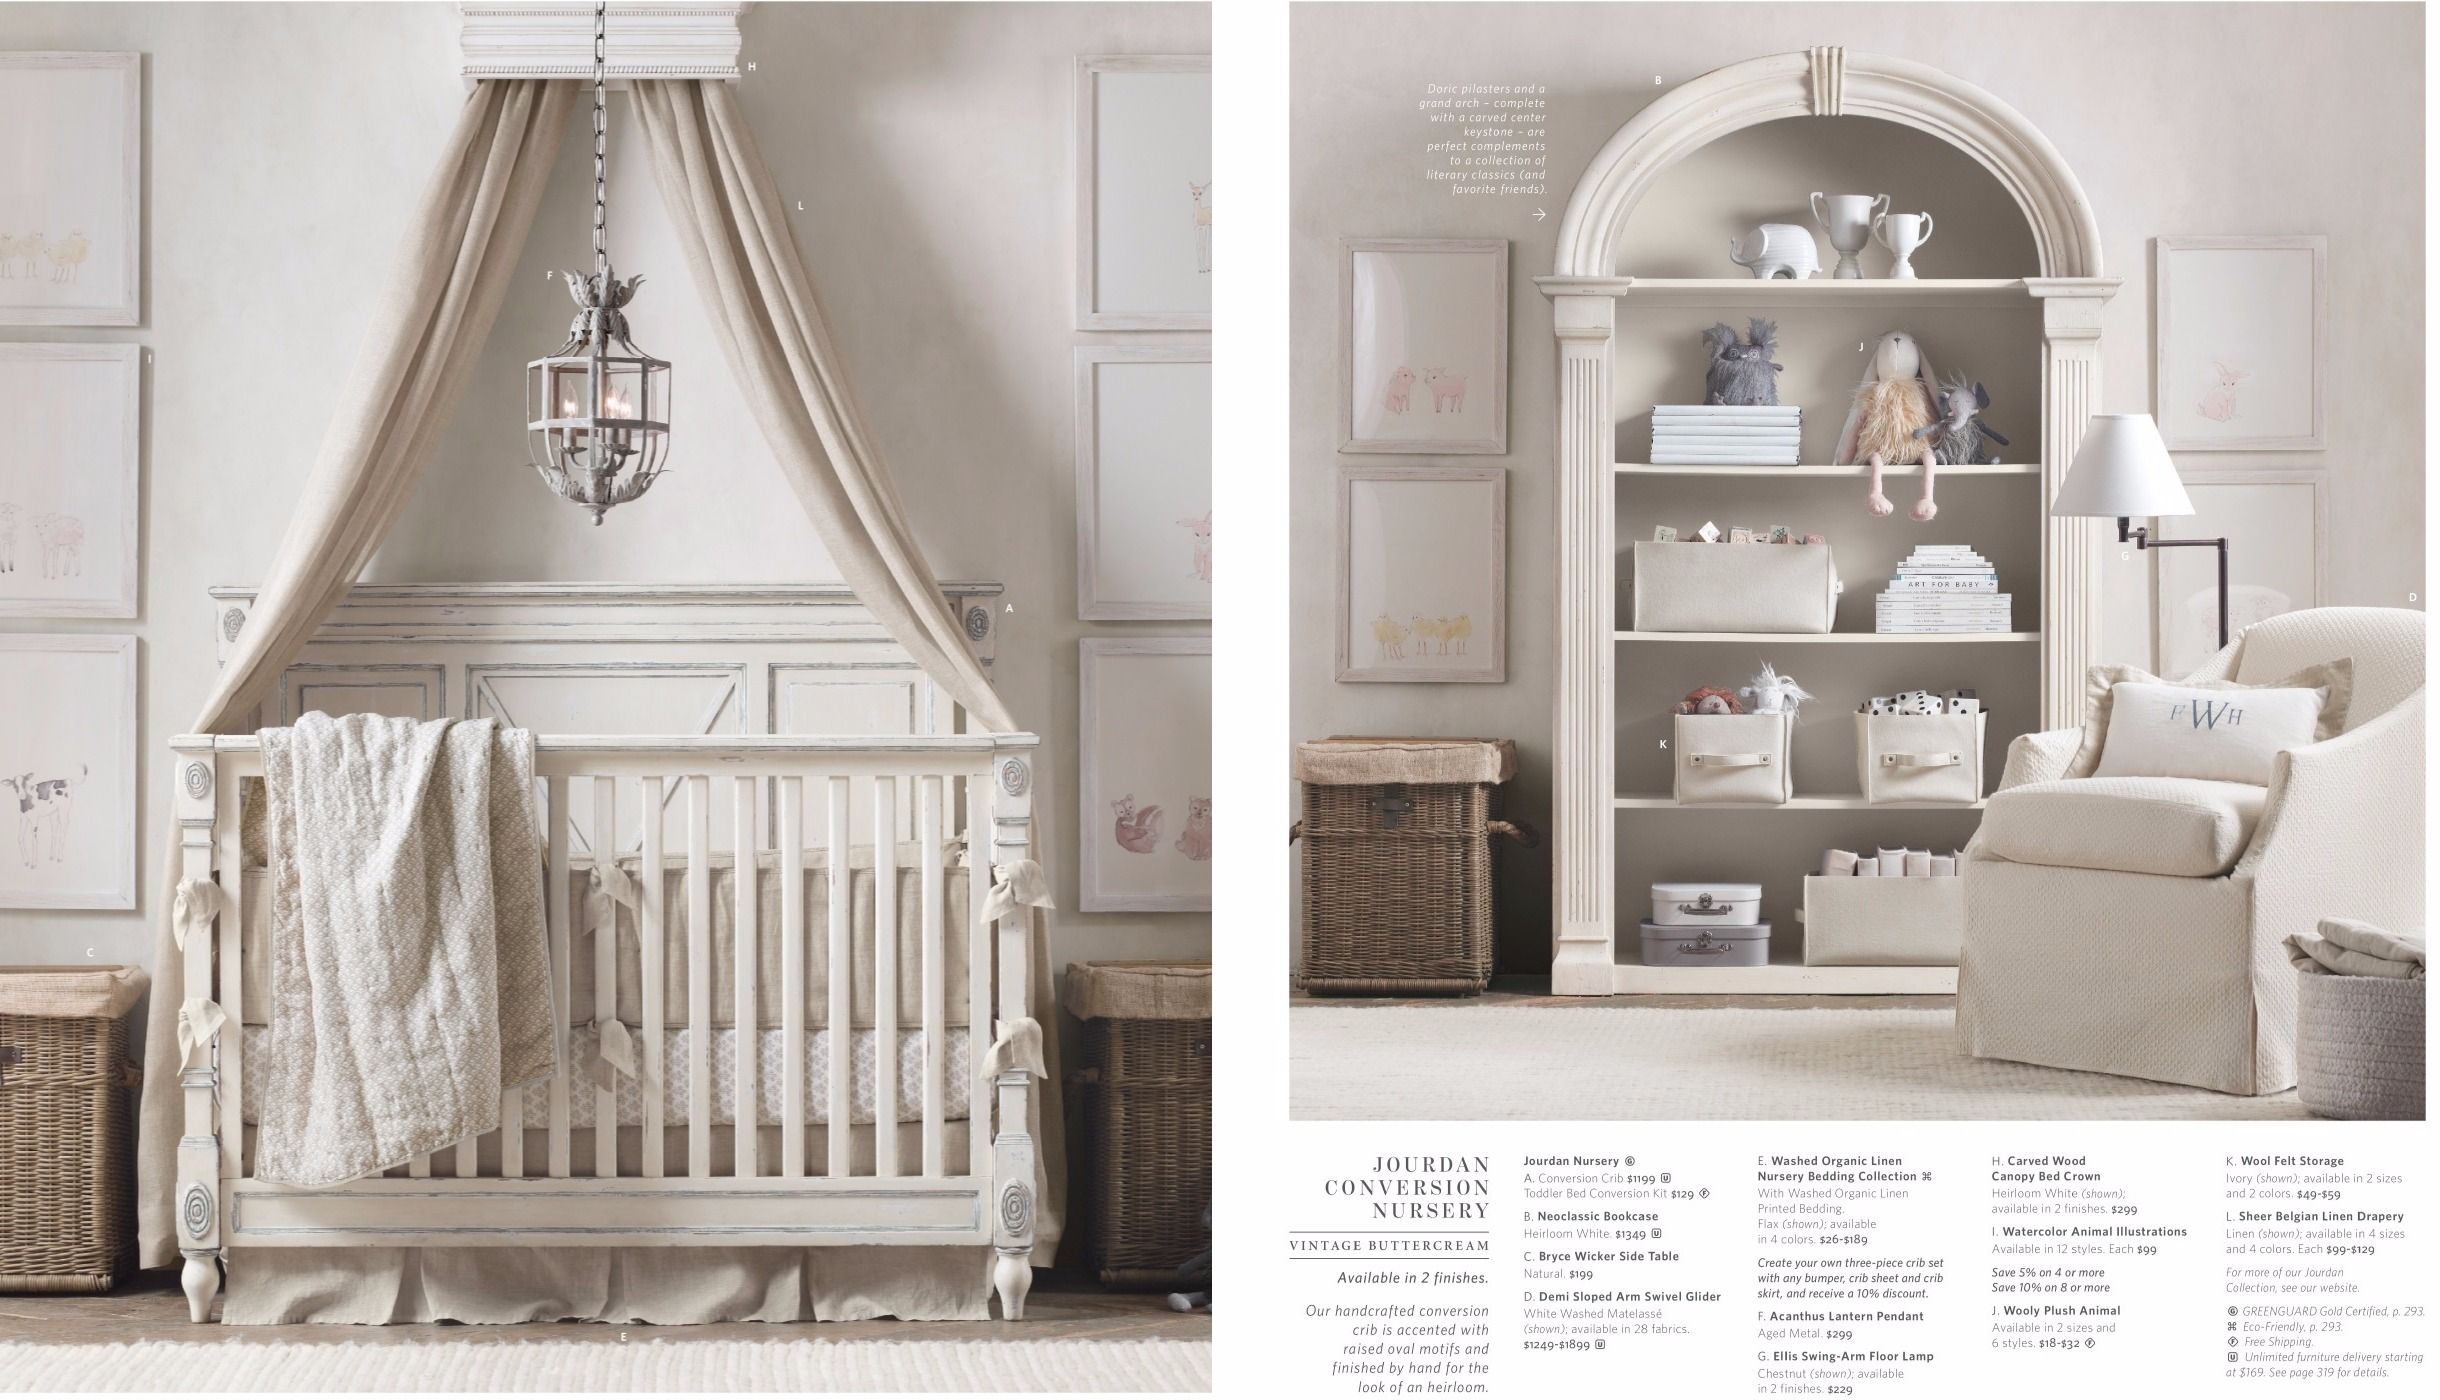 Check Out This Image Luxury Kids Bedroom Bedroom For Girls Kids Girl Nursery Bedding